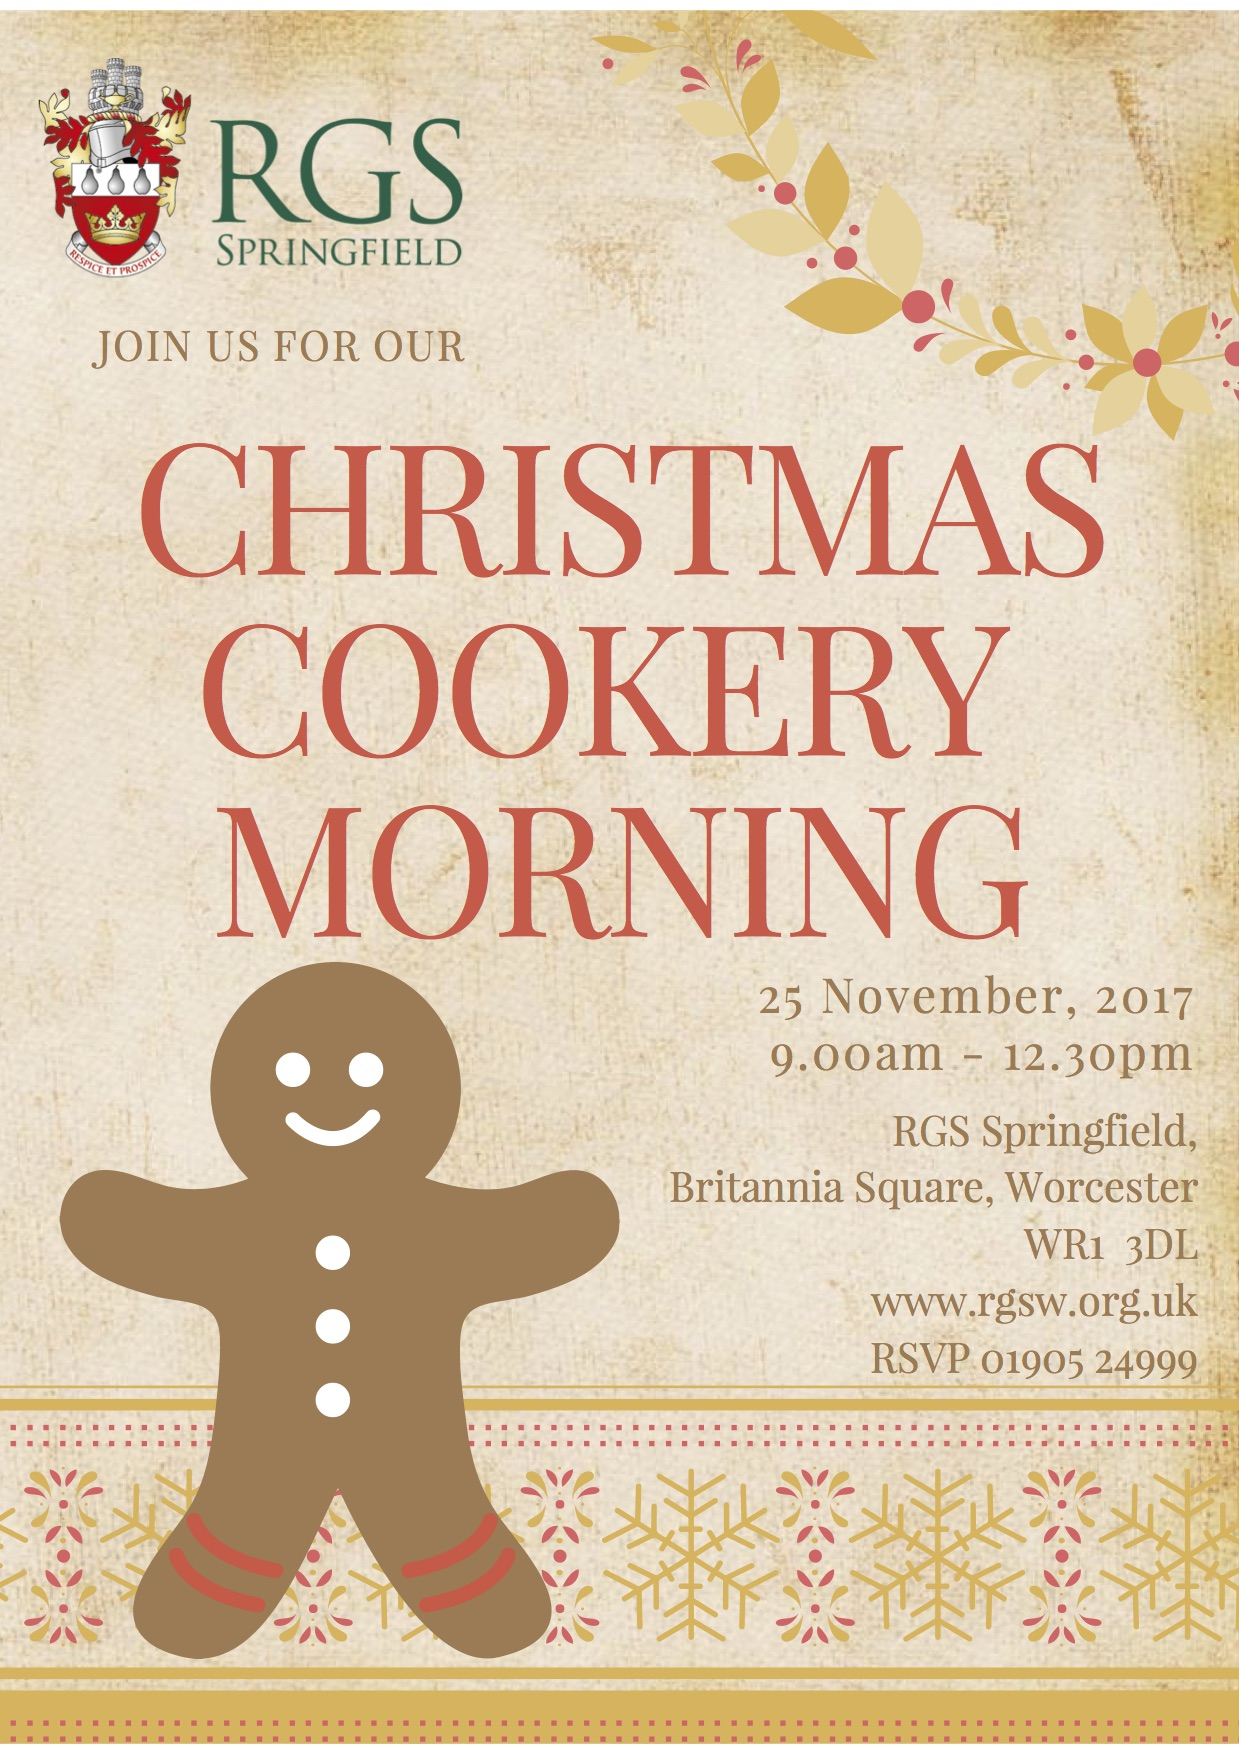 RGS Springfield Christmas Cookery Morning